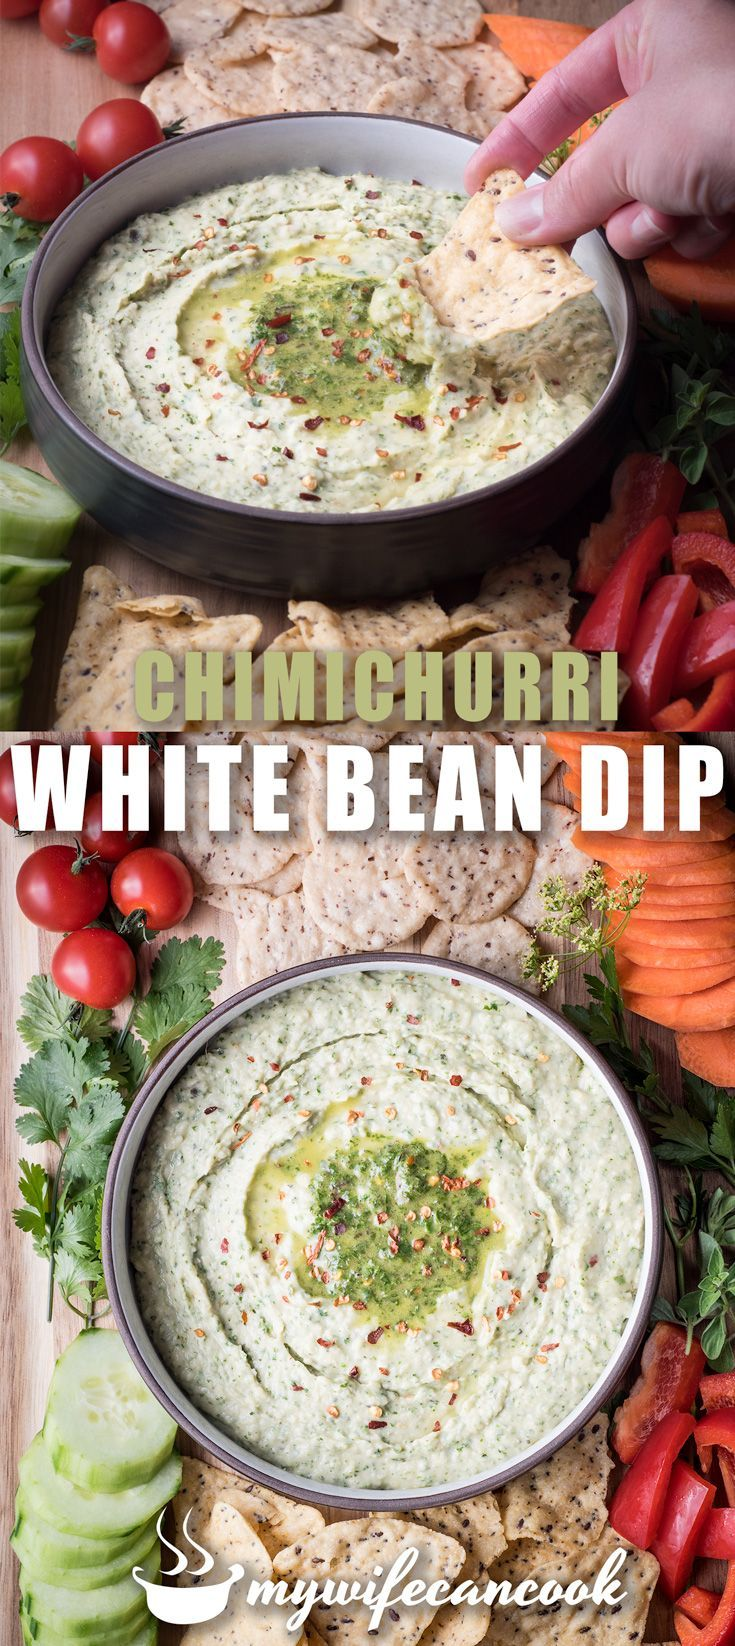 This hummus like white bean dip is full of fresh herbs for the garden and other ingredients found in chimichurri.  Serve as an appetizer with veggies or your favorite cracker/chip.  Vegan and gluten free too.